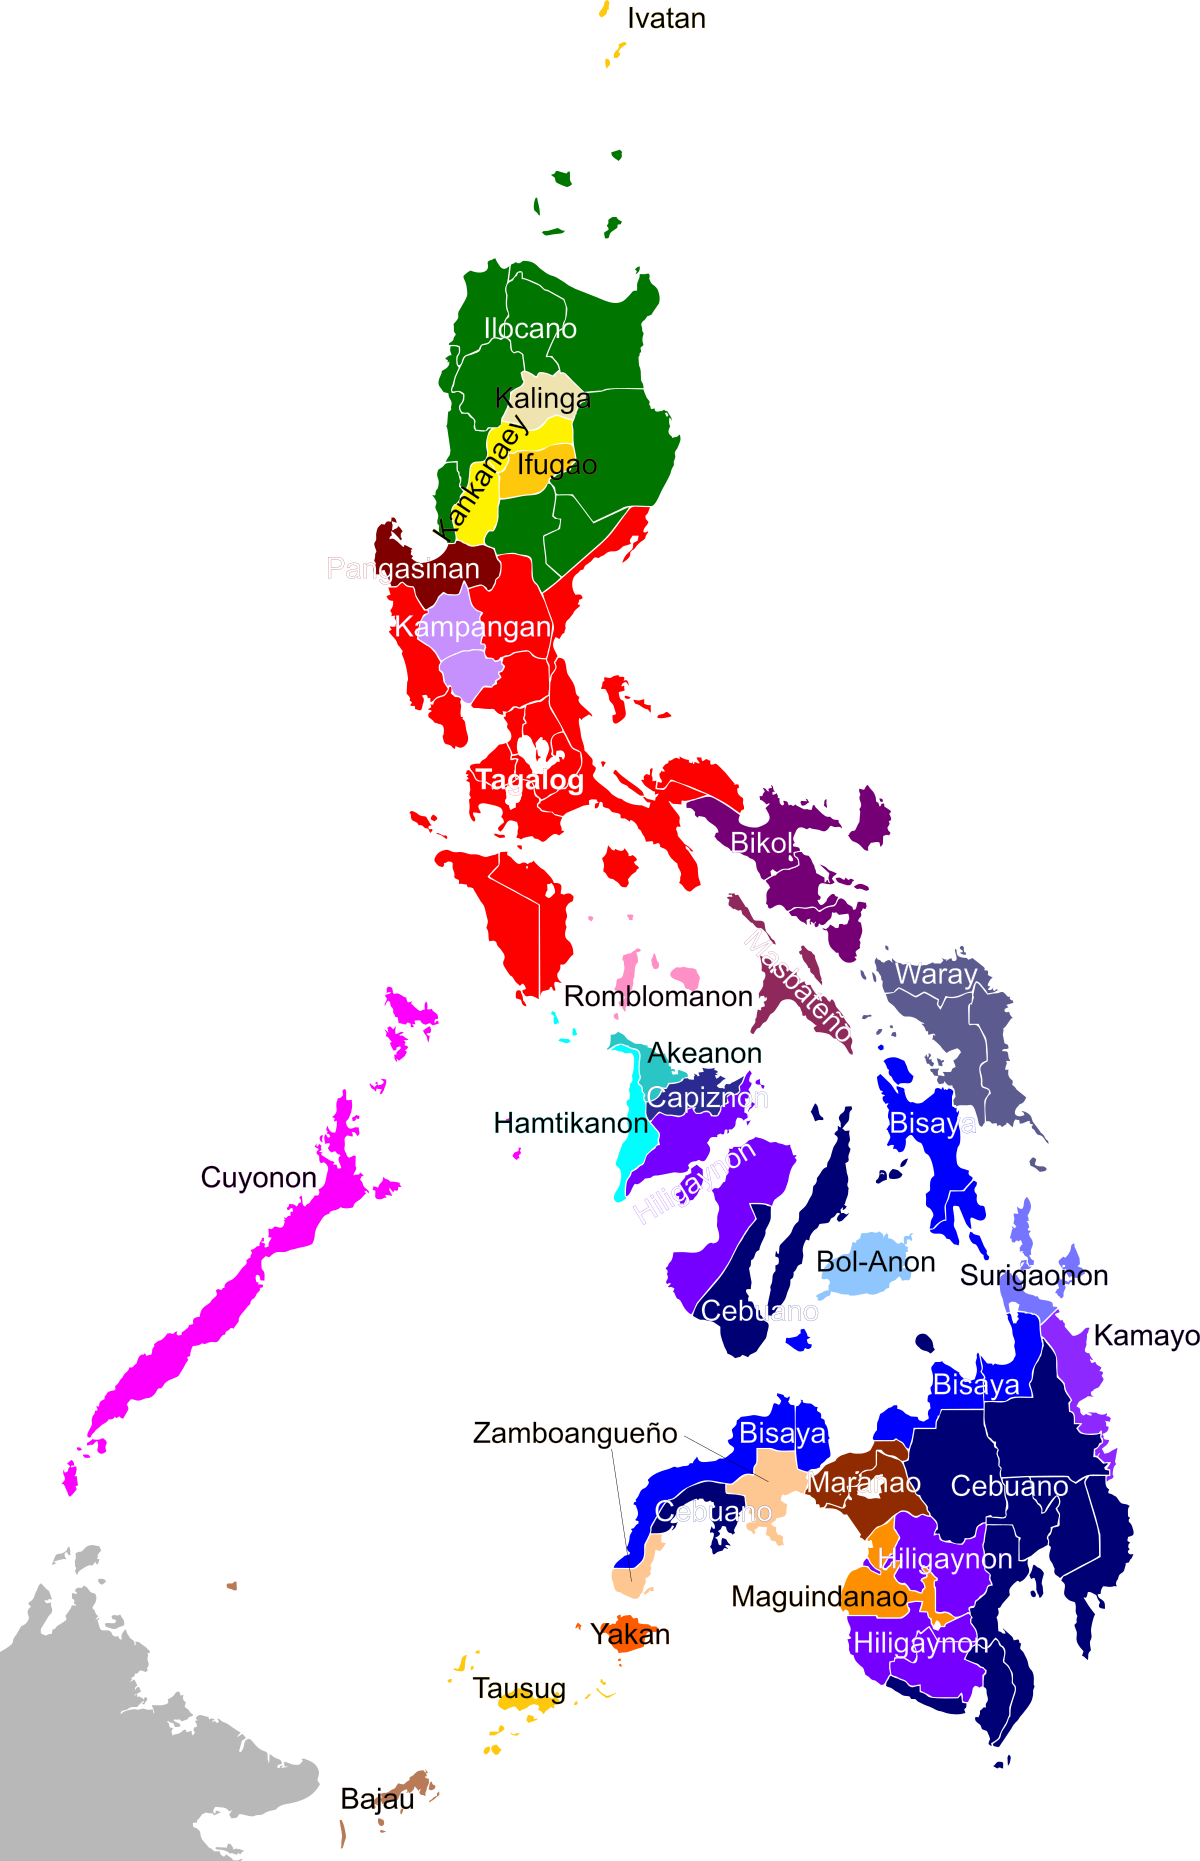 Diversity drawing culture mindanao. Ethnic groups in the